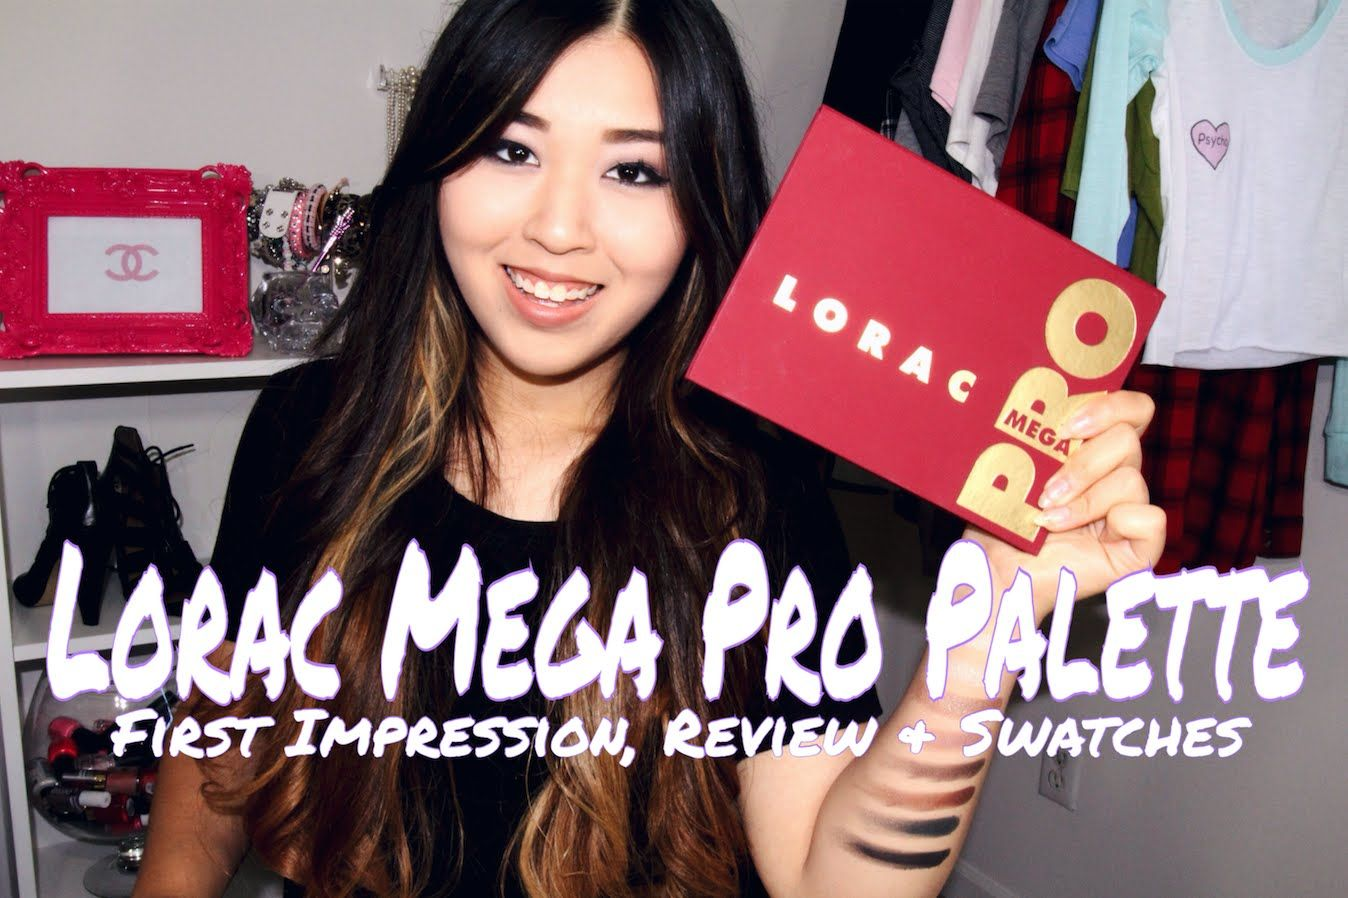 Lorac Mega Pro Palette | First Impression, Review & Swatches